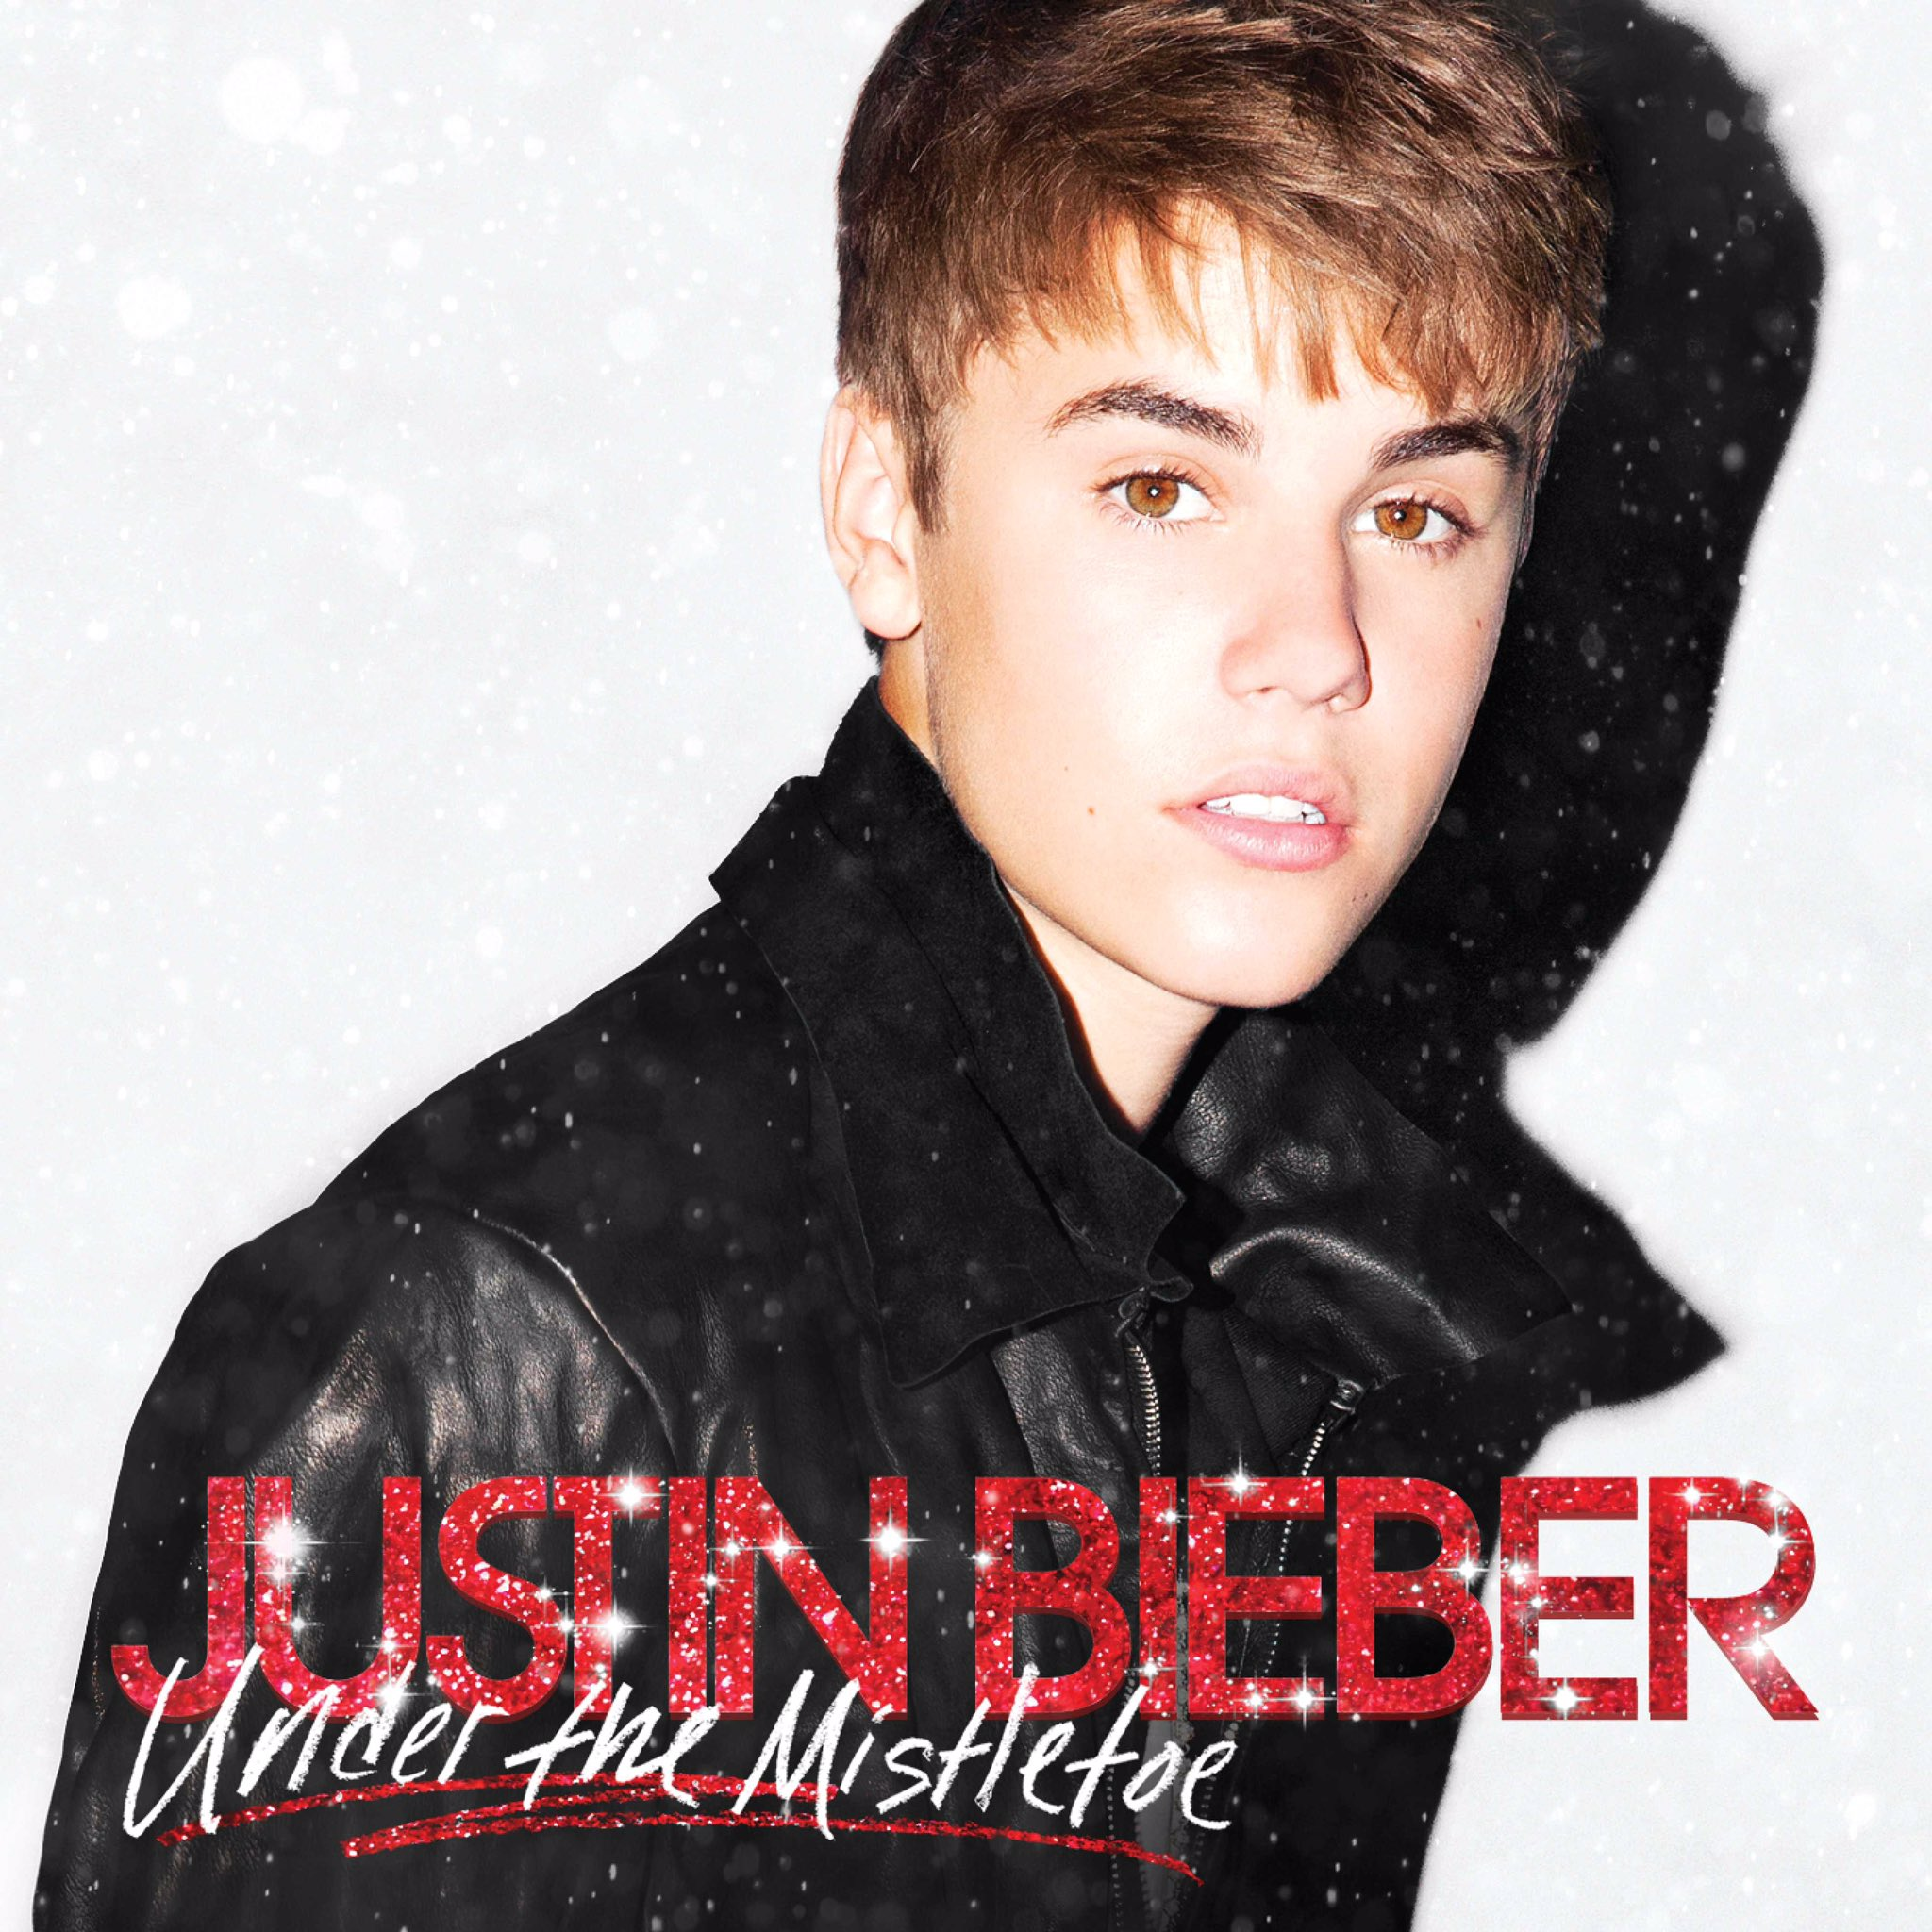 .@justinbieber's Under The Mistletoe is on red, glittery vinyl for the first time! Exclusively @UrbanOutfitters https://t.co/RiPfYMGoFq